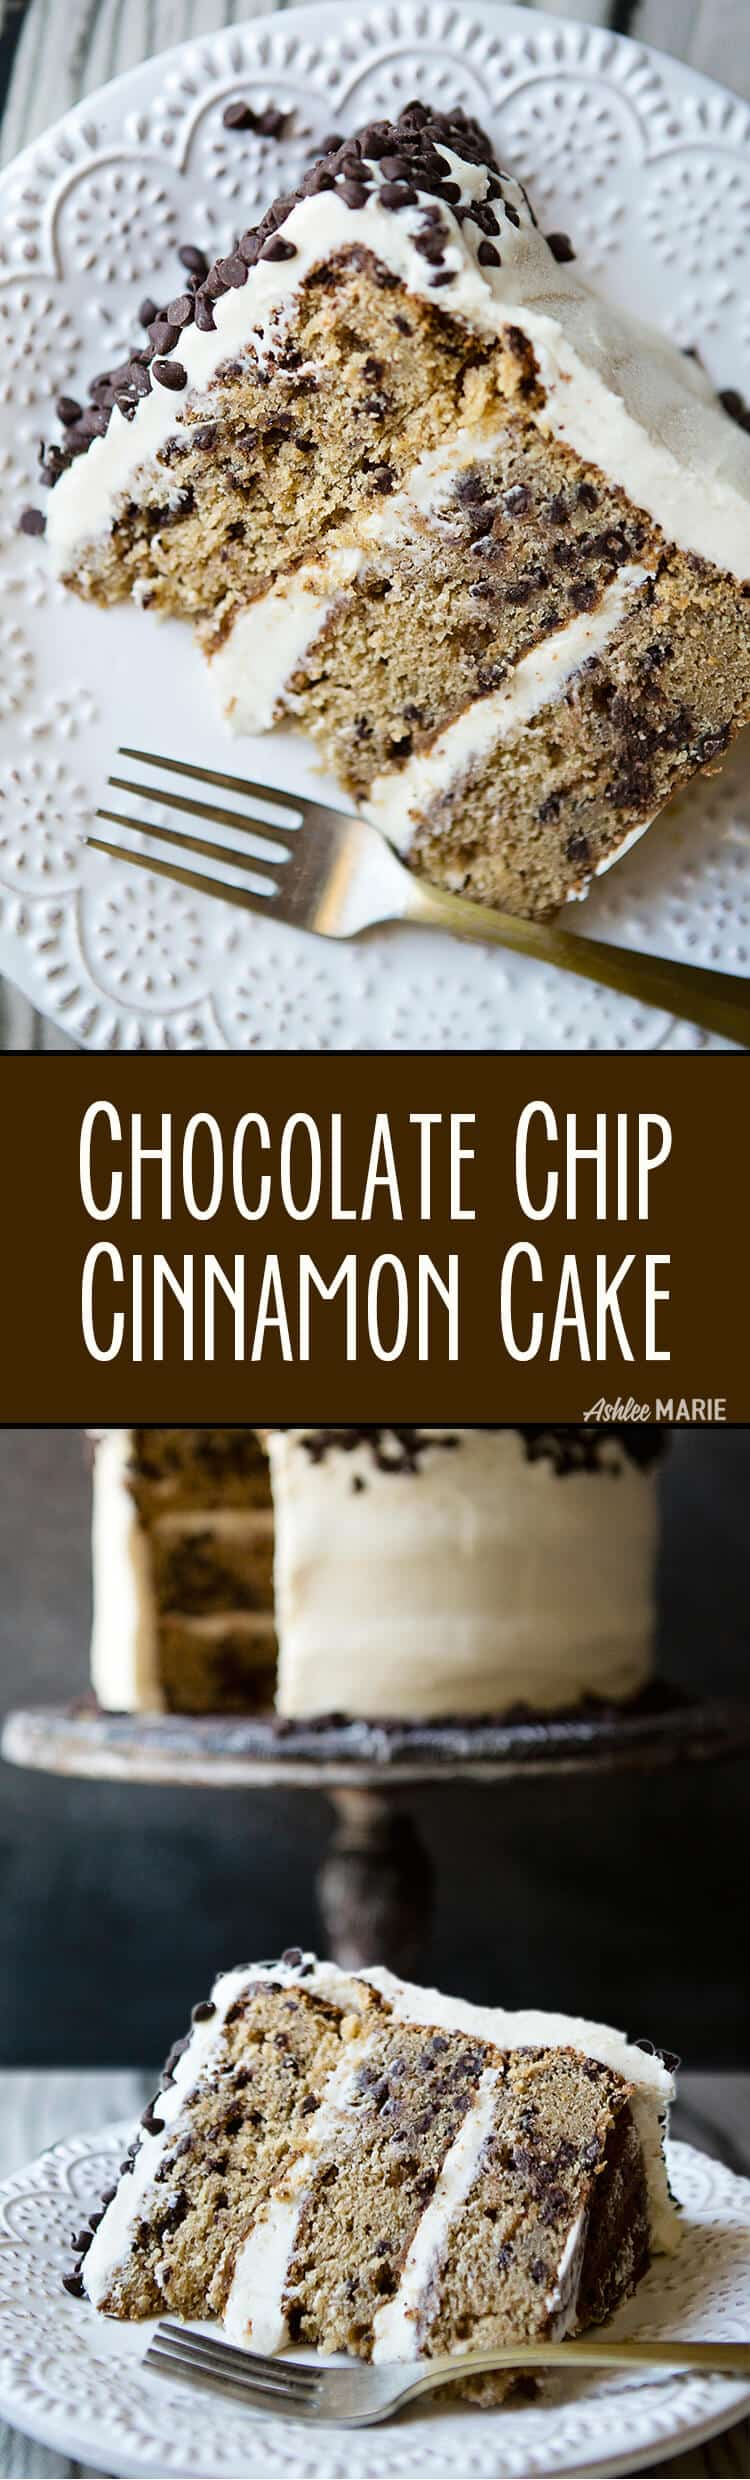 my favorite cake - cinnamon chocolate chip cake with brown sugar cream cheese frosting